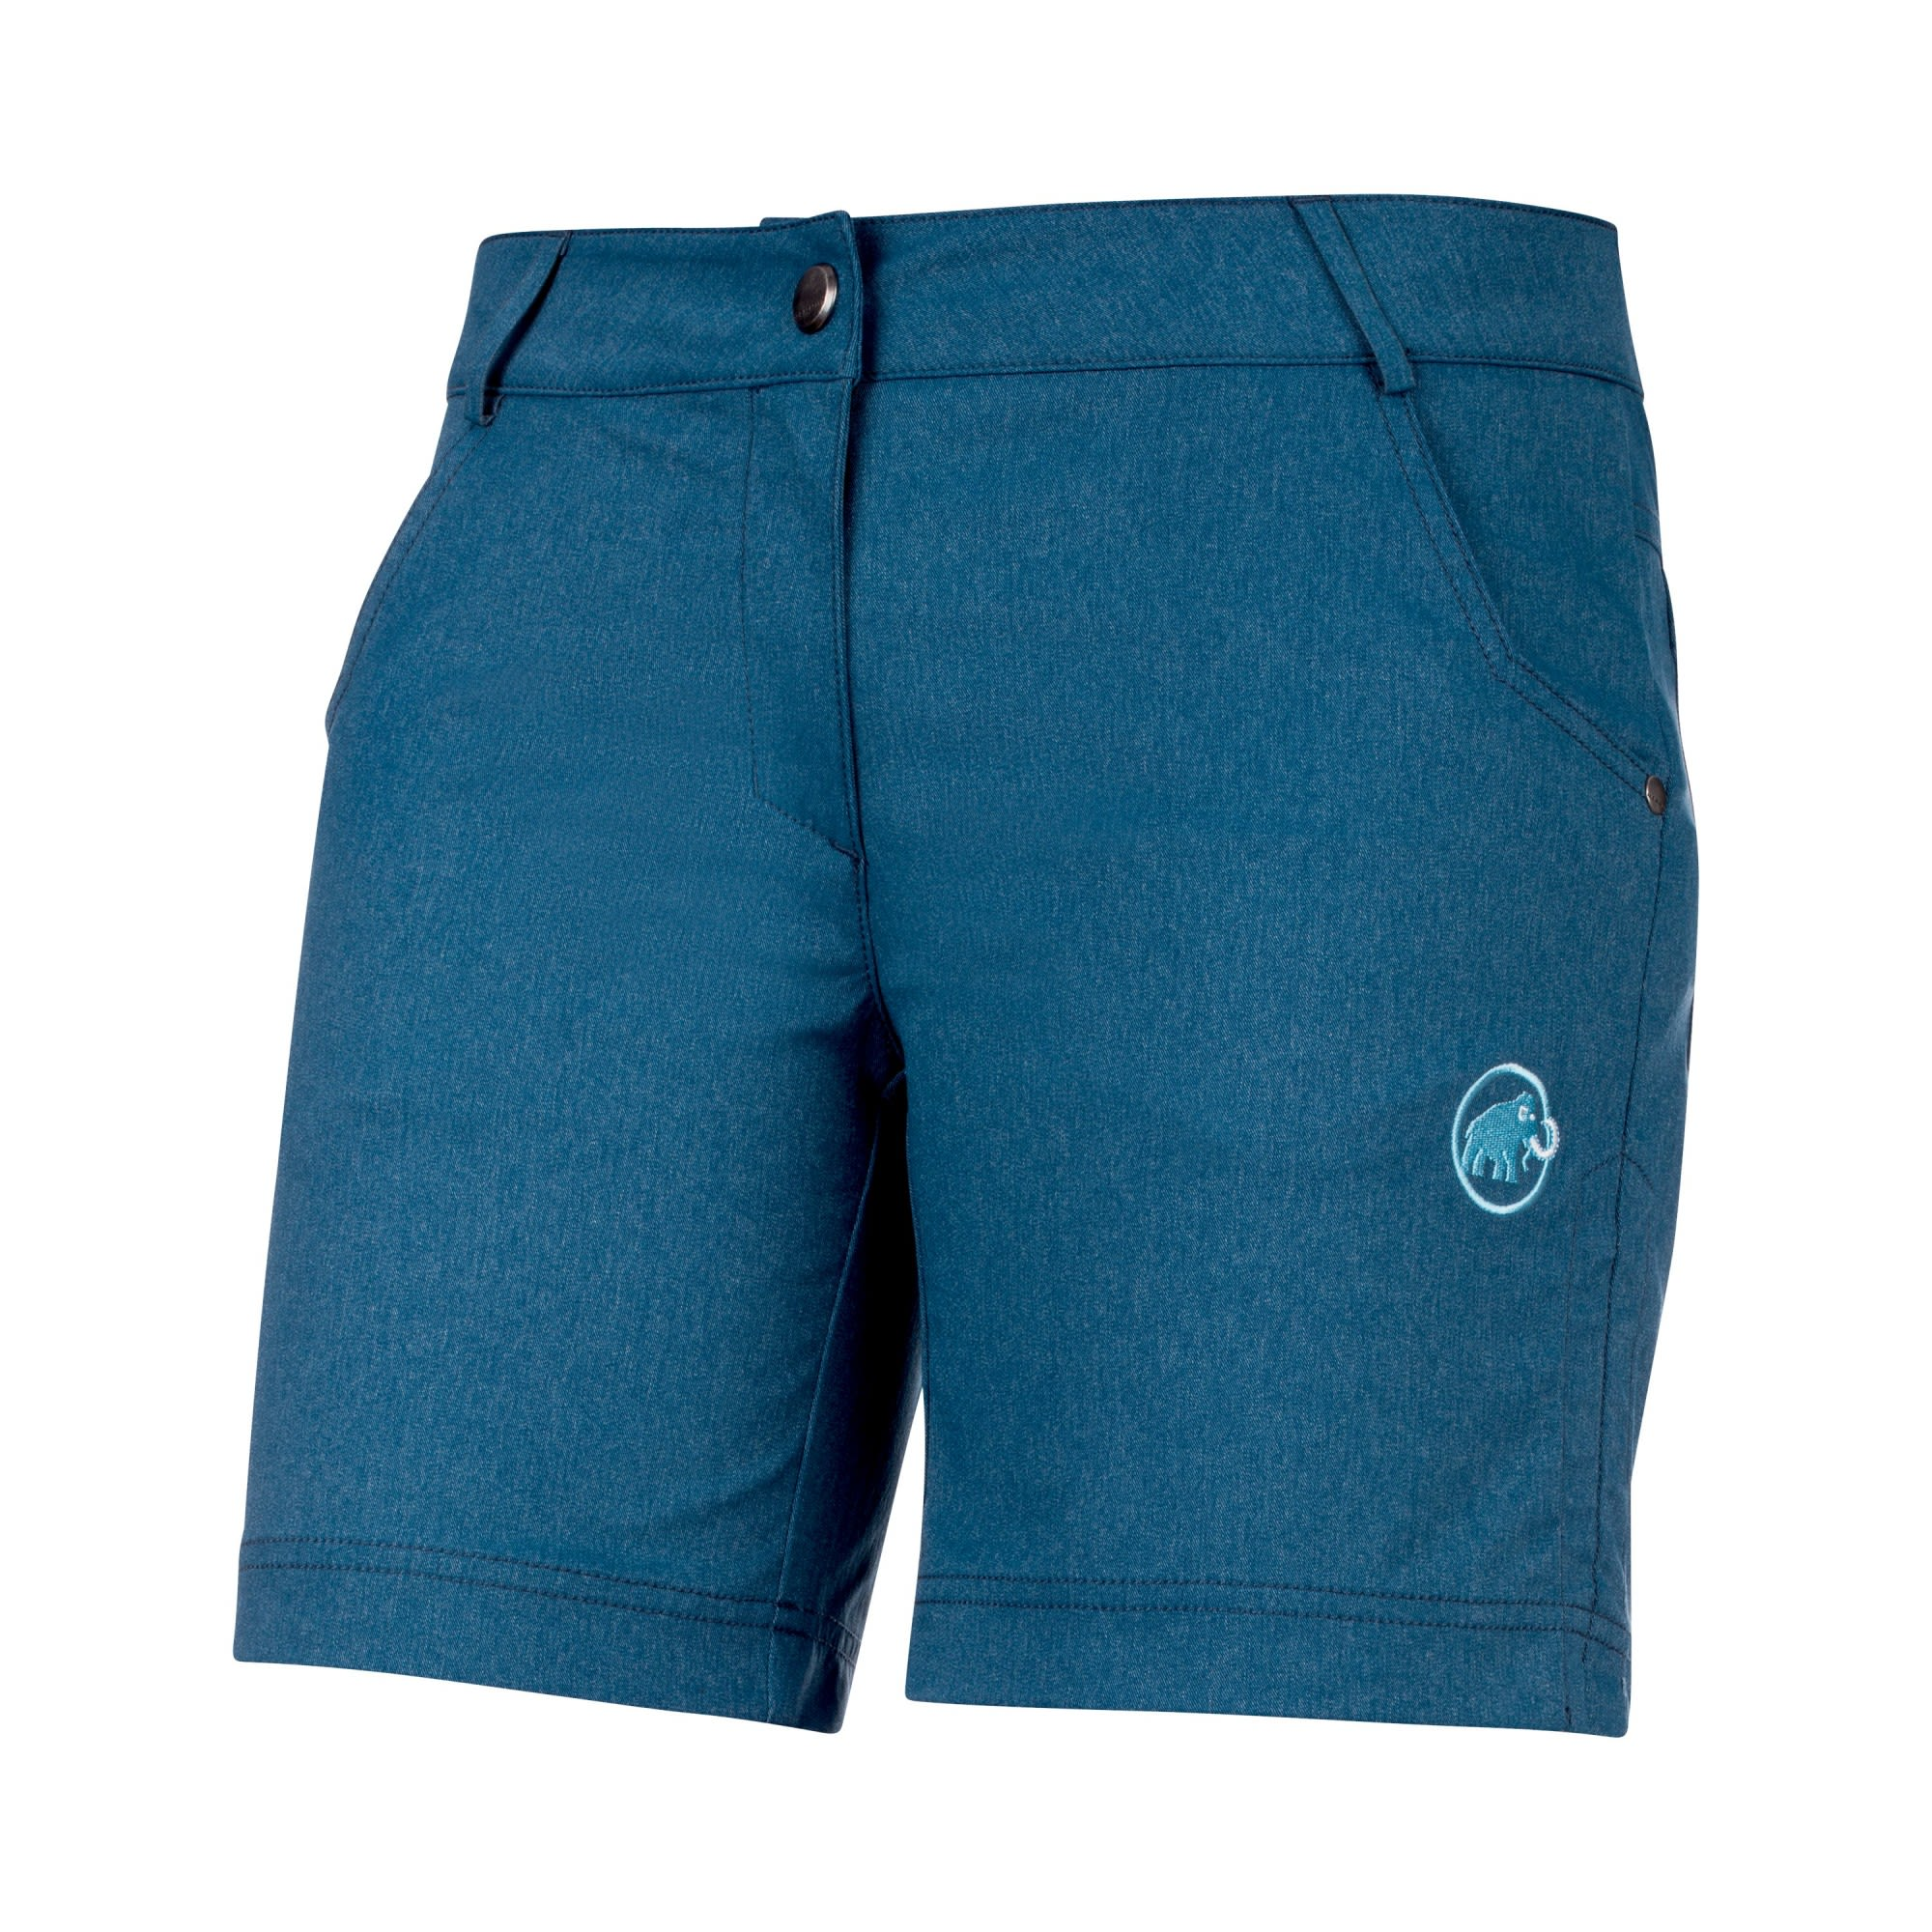 Mammut Massone Shorts Blau, Female Shorts, 40